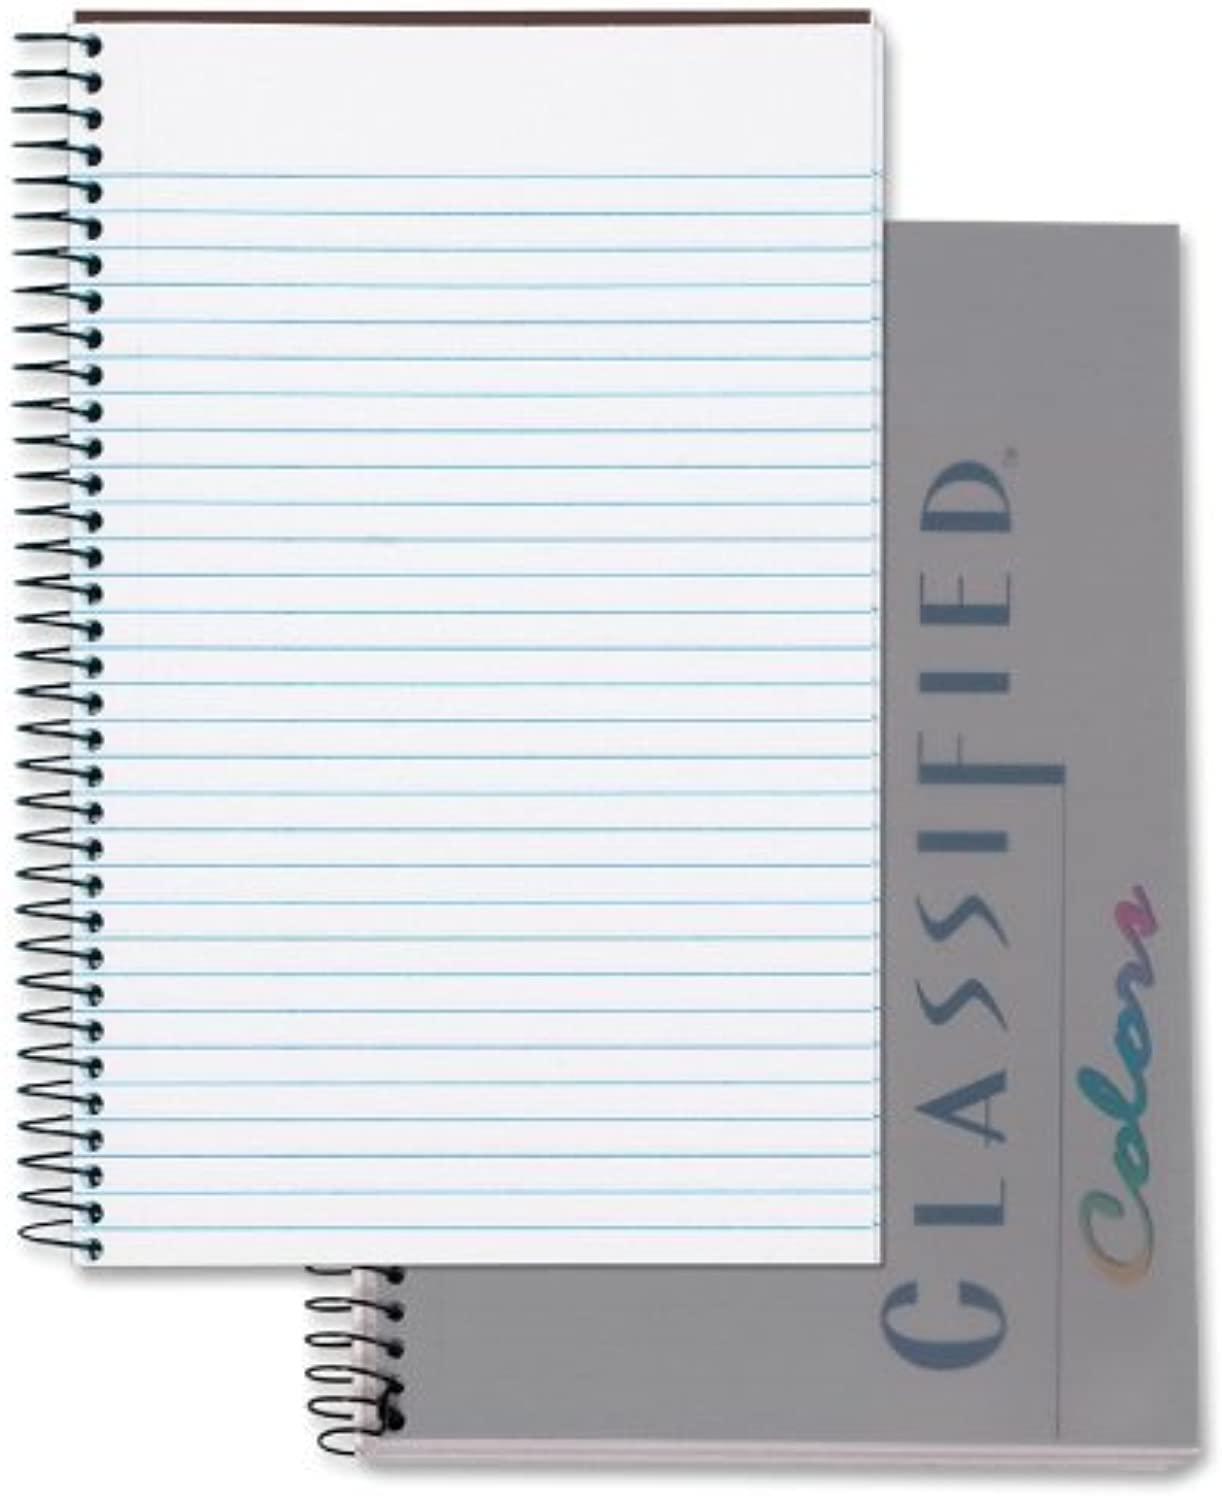 Classified Graphite Cover Notebook by Tops